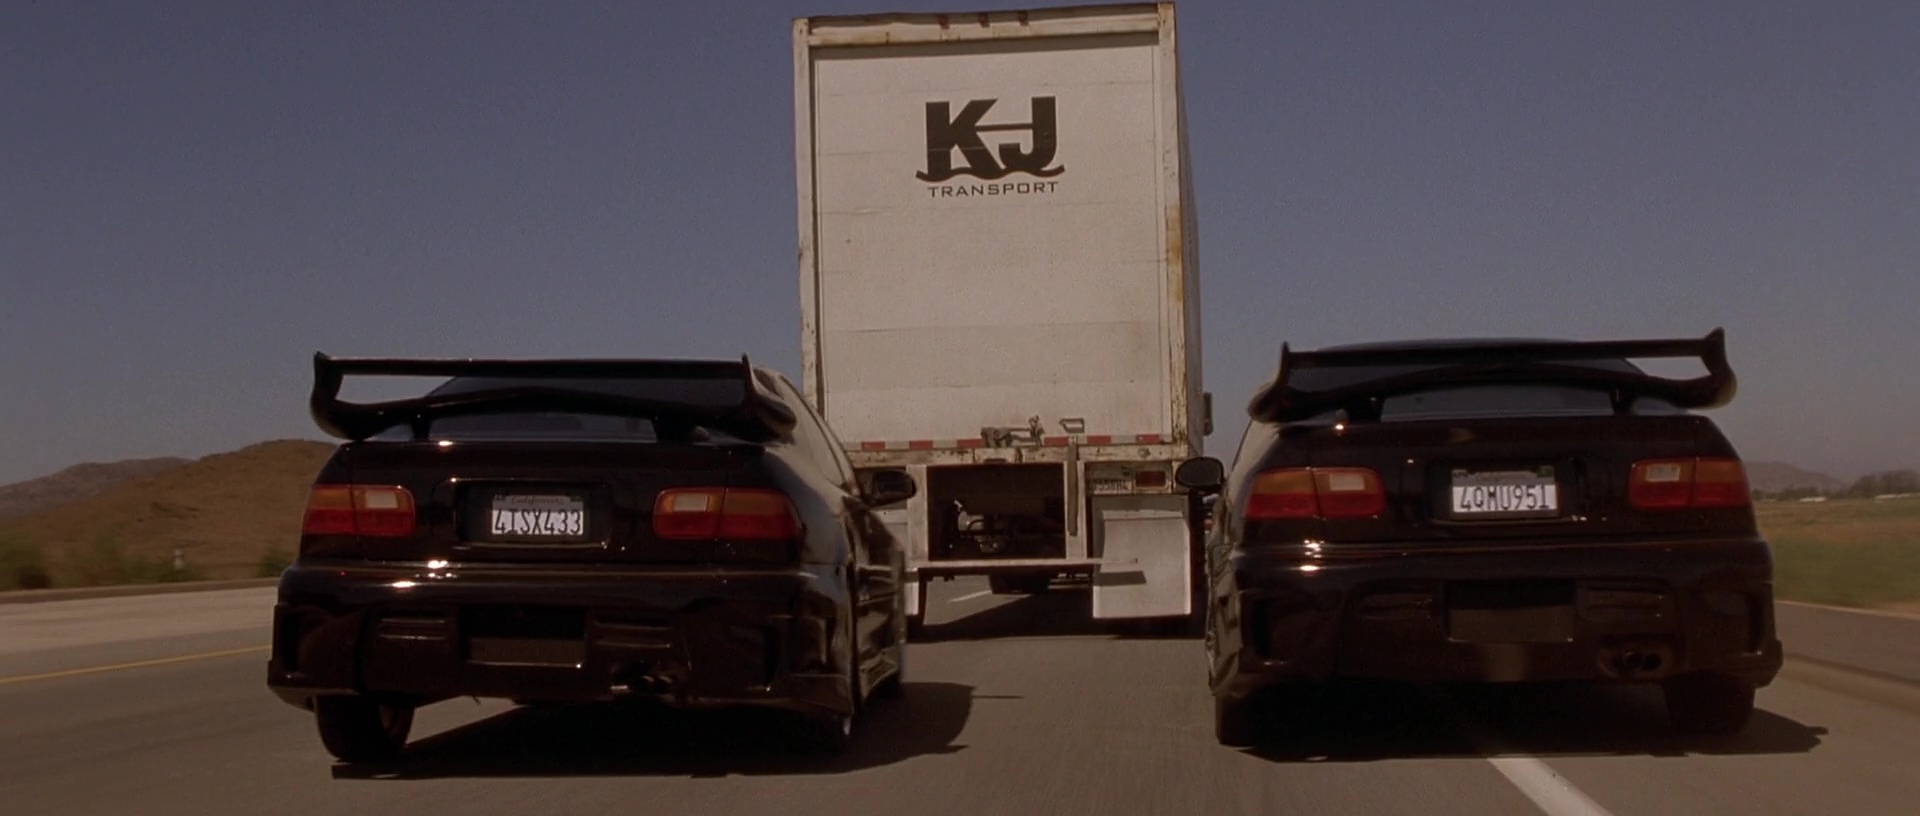 image honda civics final truck the fast and the furious wiki fandom powered by. Black Bedroom Furniture Sets. Home Design Ideas